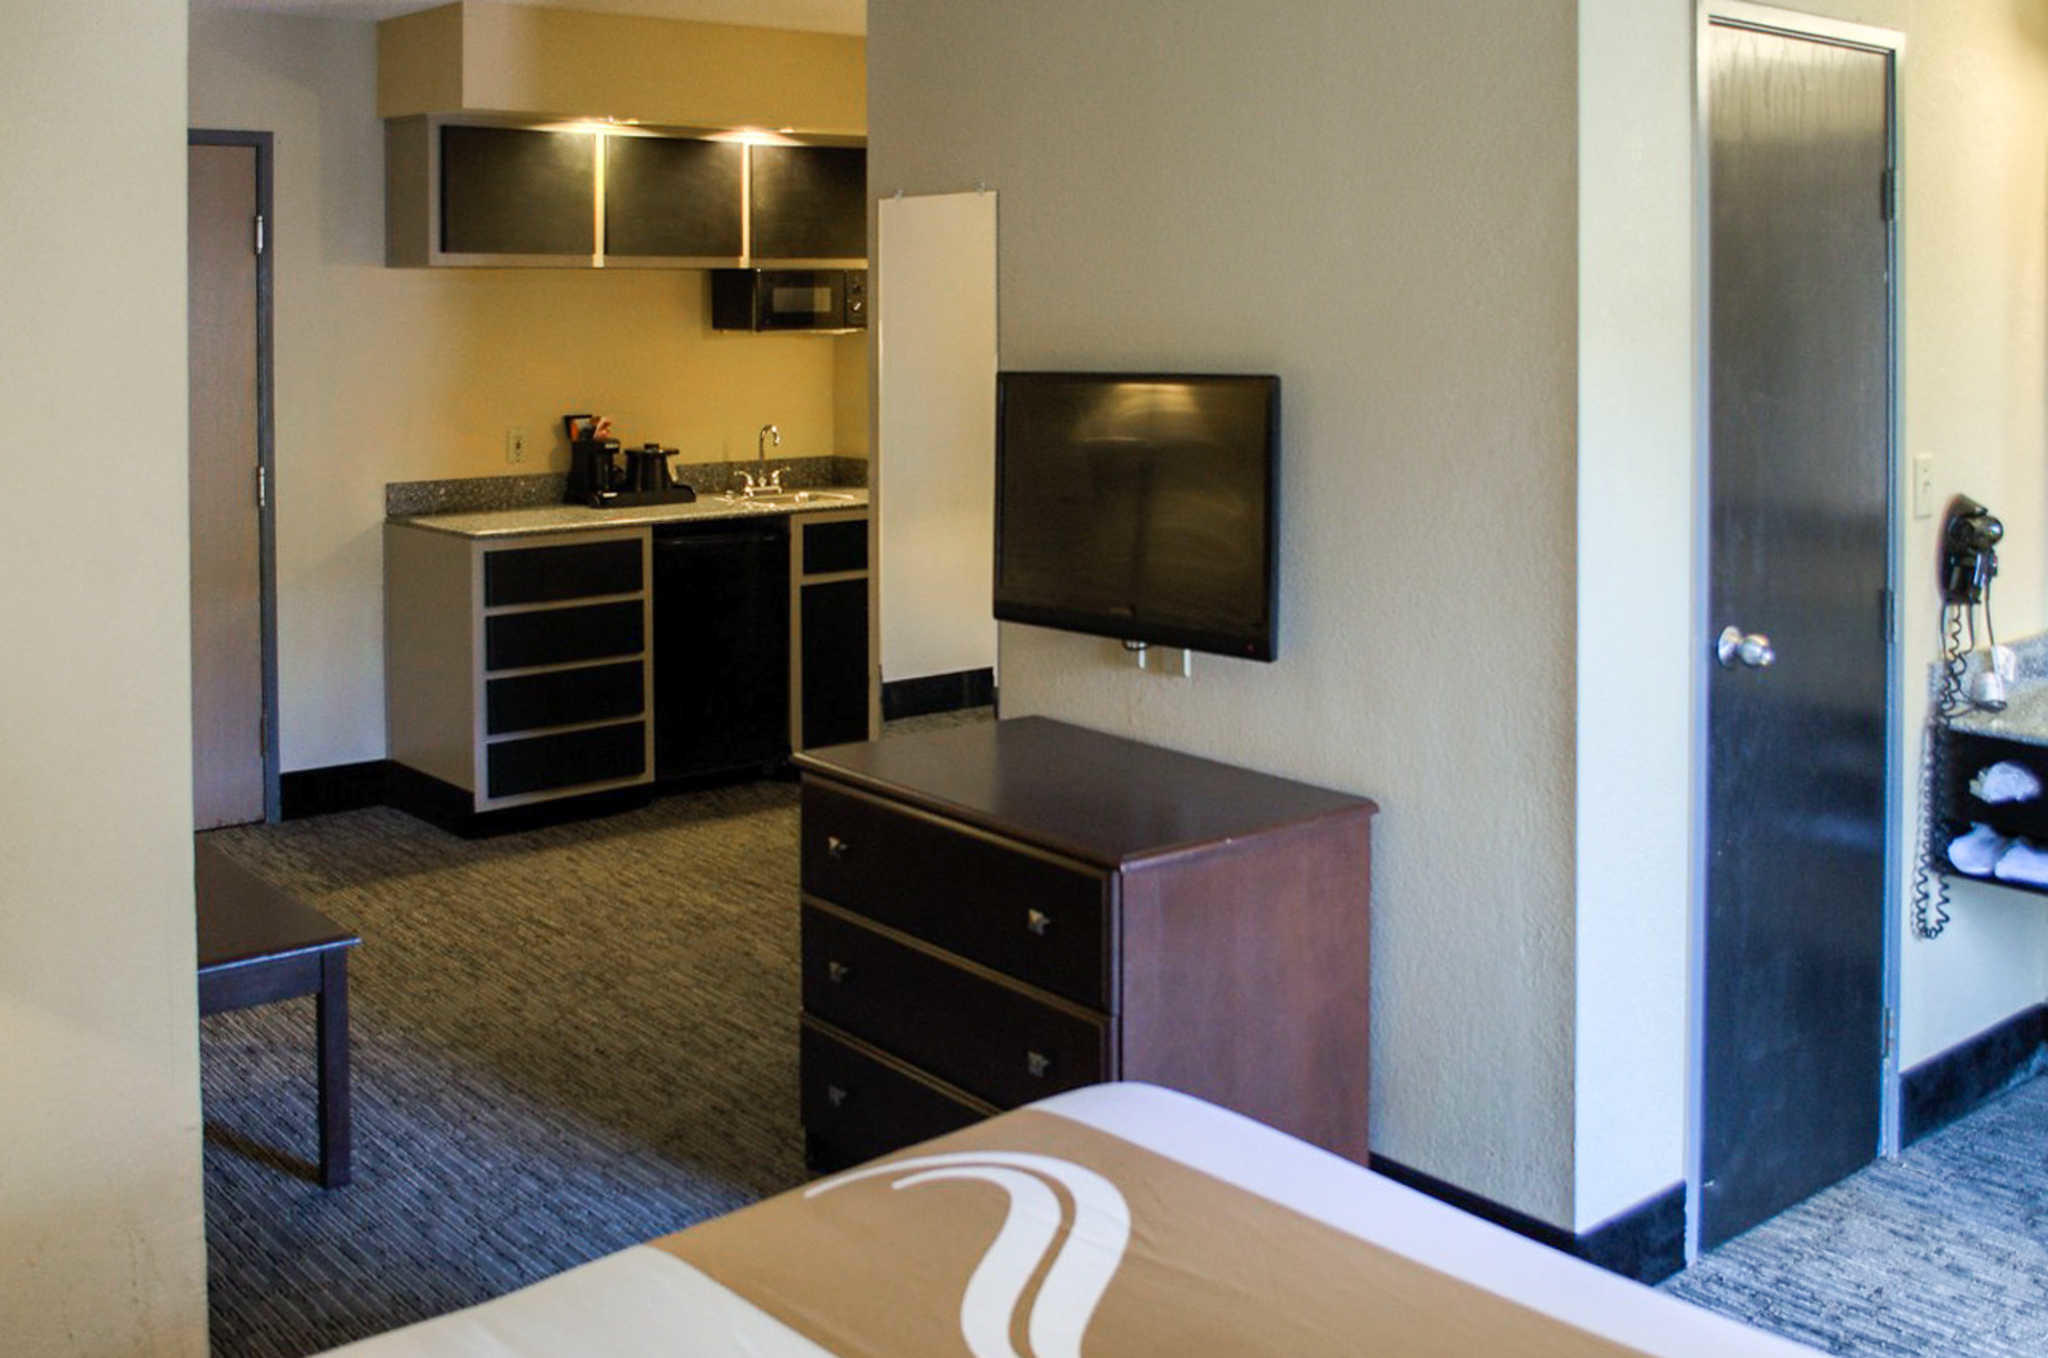 Quality Inn & Suites at Airport Blvd I-65 image 11